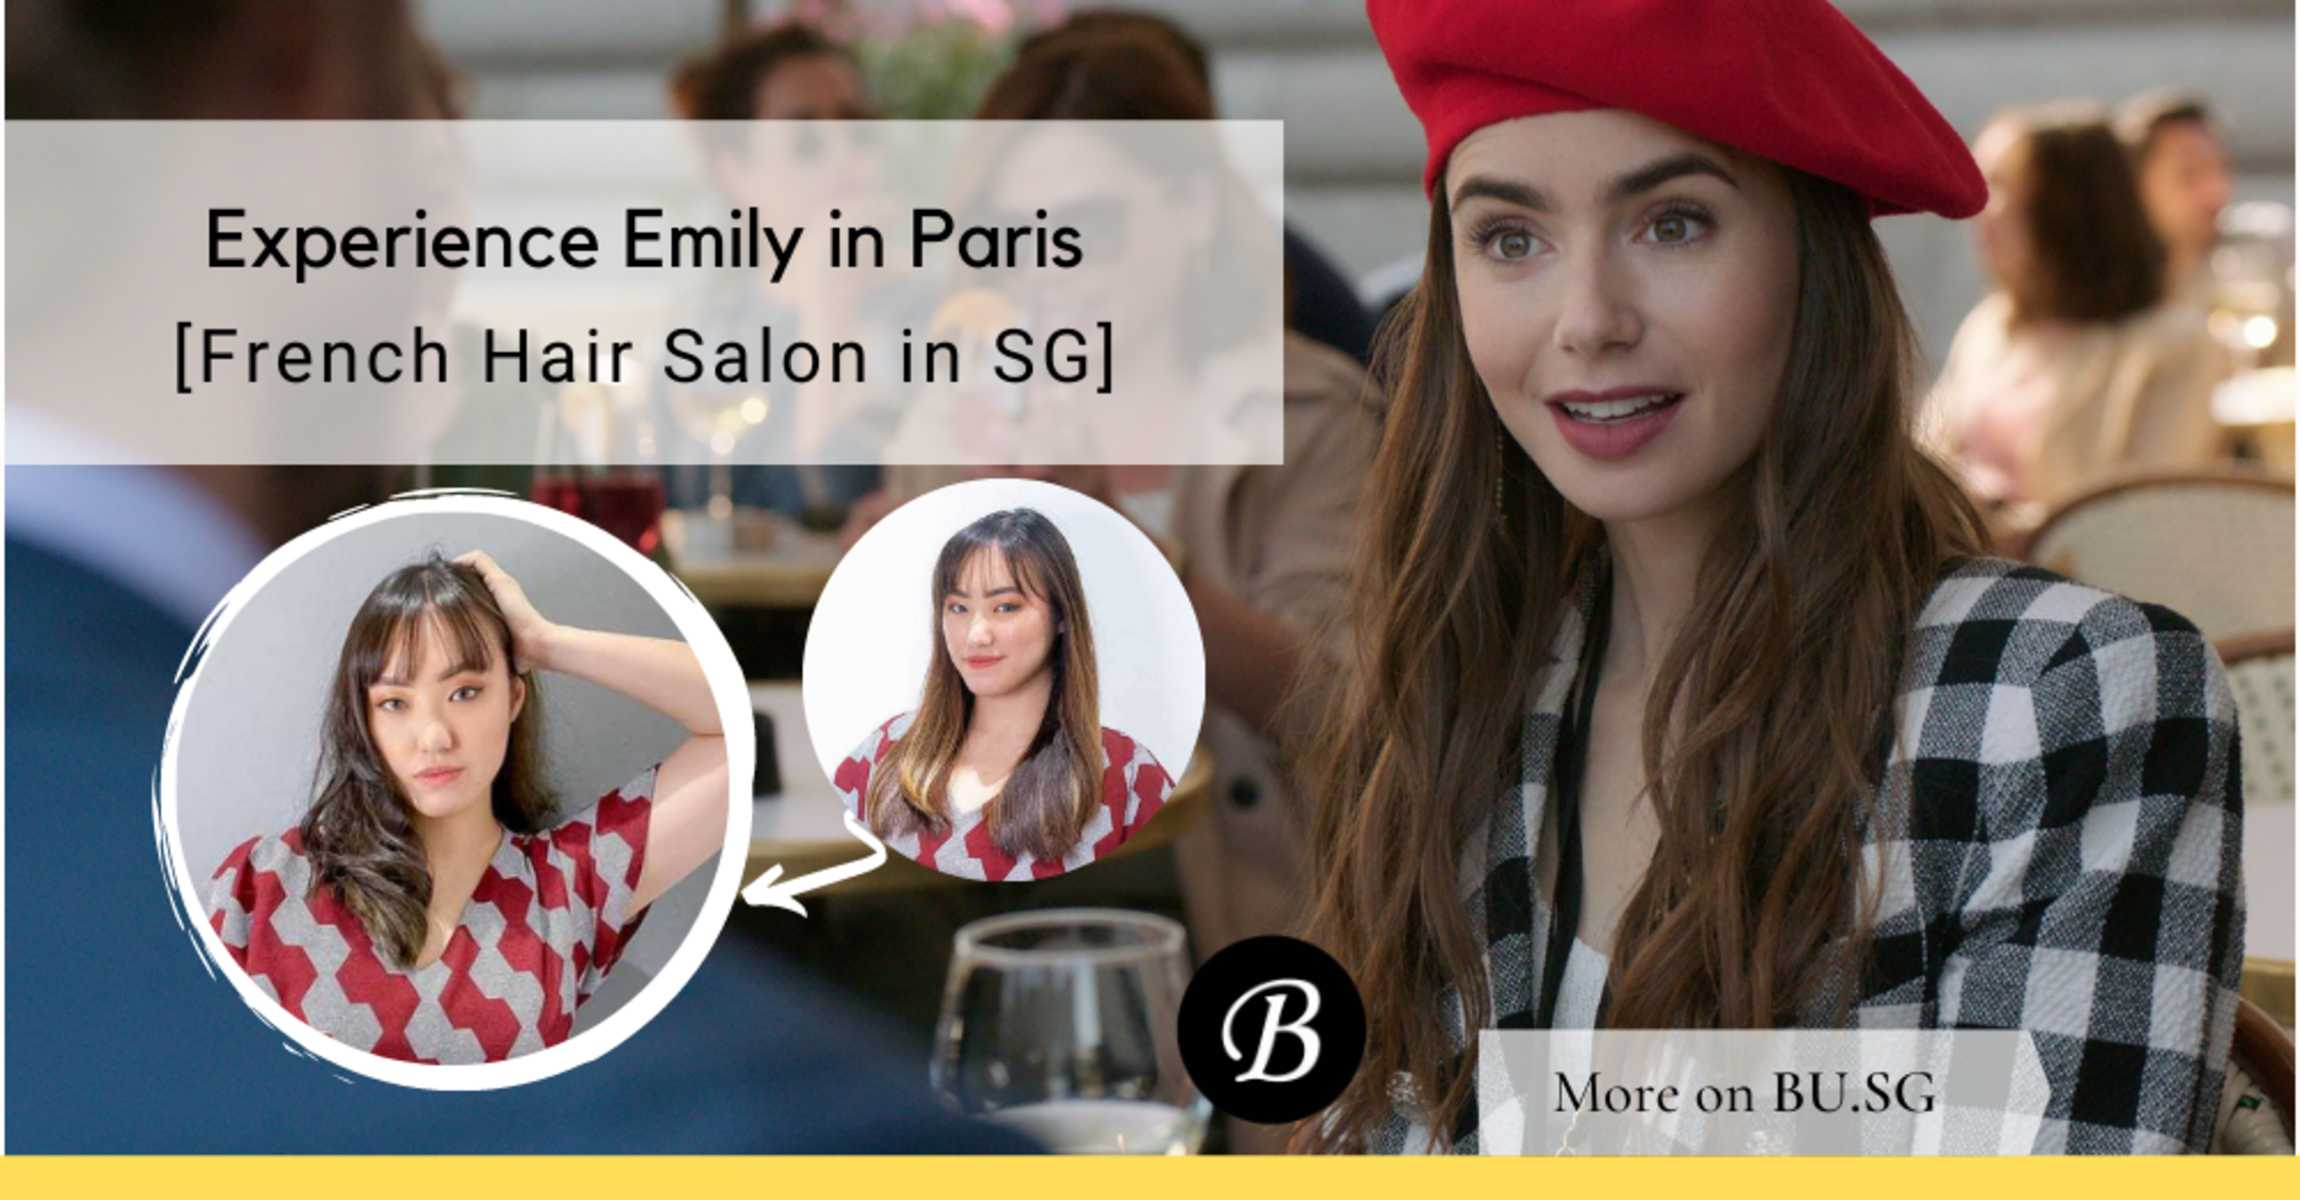 Experience Emily in Paris at this French Hair Salon in Singapore